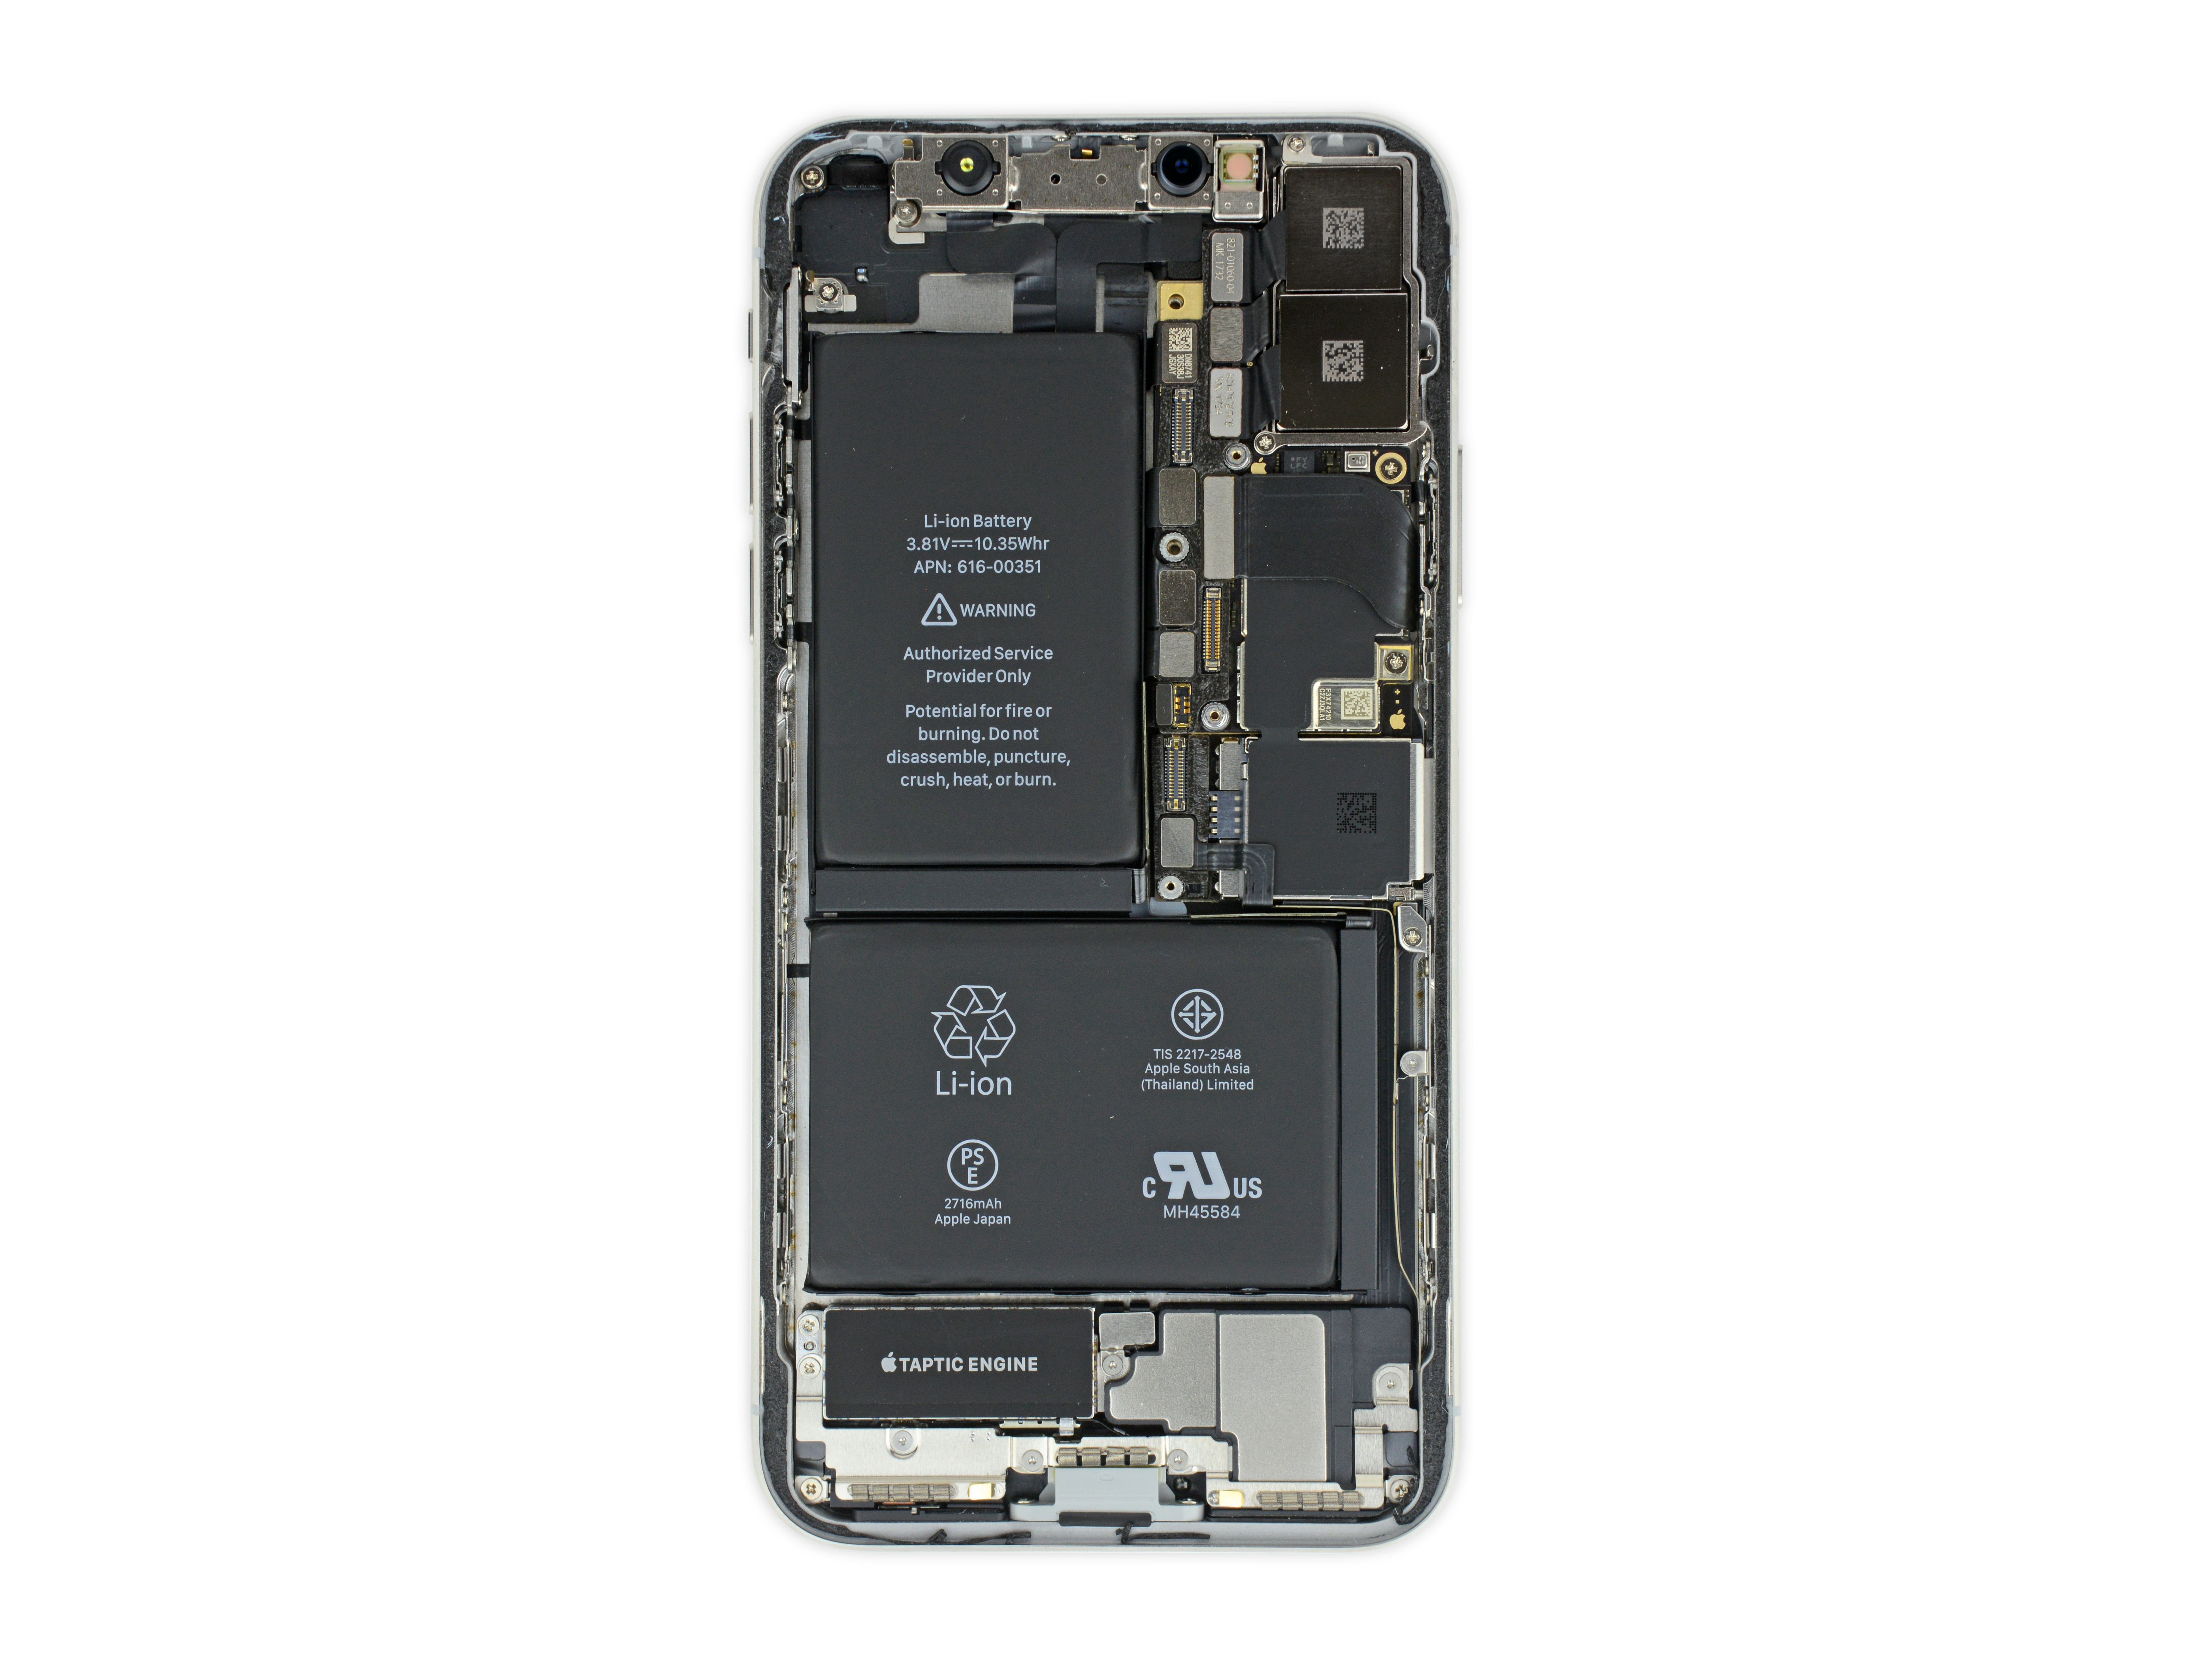 3 Things We Just Learned From The Iphone X Teardown Cnet Cell Phone Emergency Charger Pack Circuit Diagram Centre You Can See Some Pretty Sweet Ray Images At Ifixits Site Too Point Is By Making All Chips Fit Into Notch In That L Shaped Battery